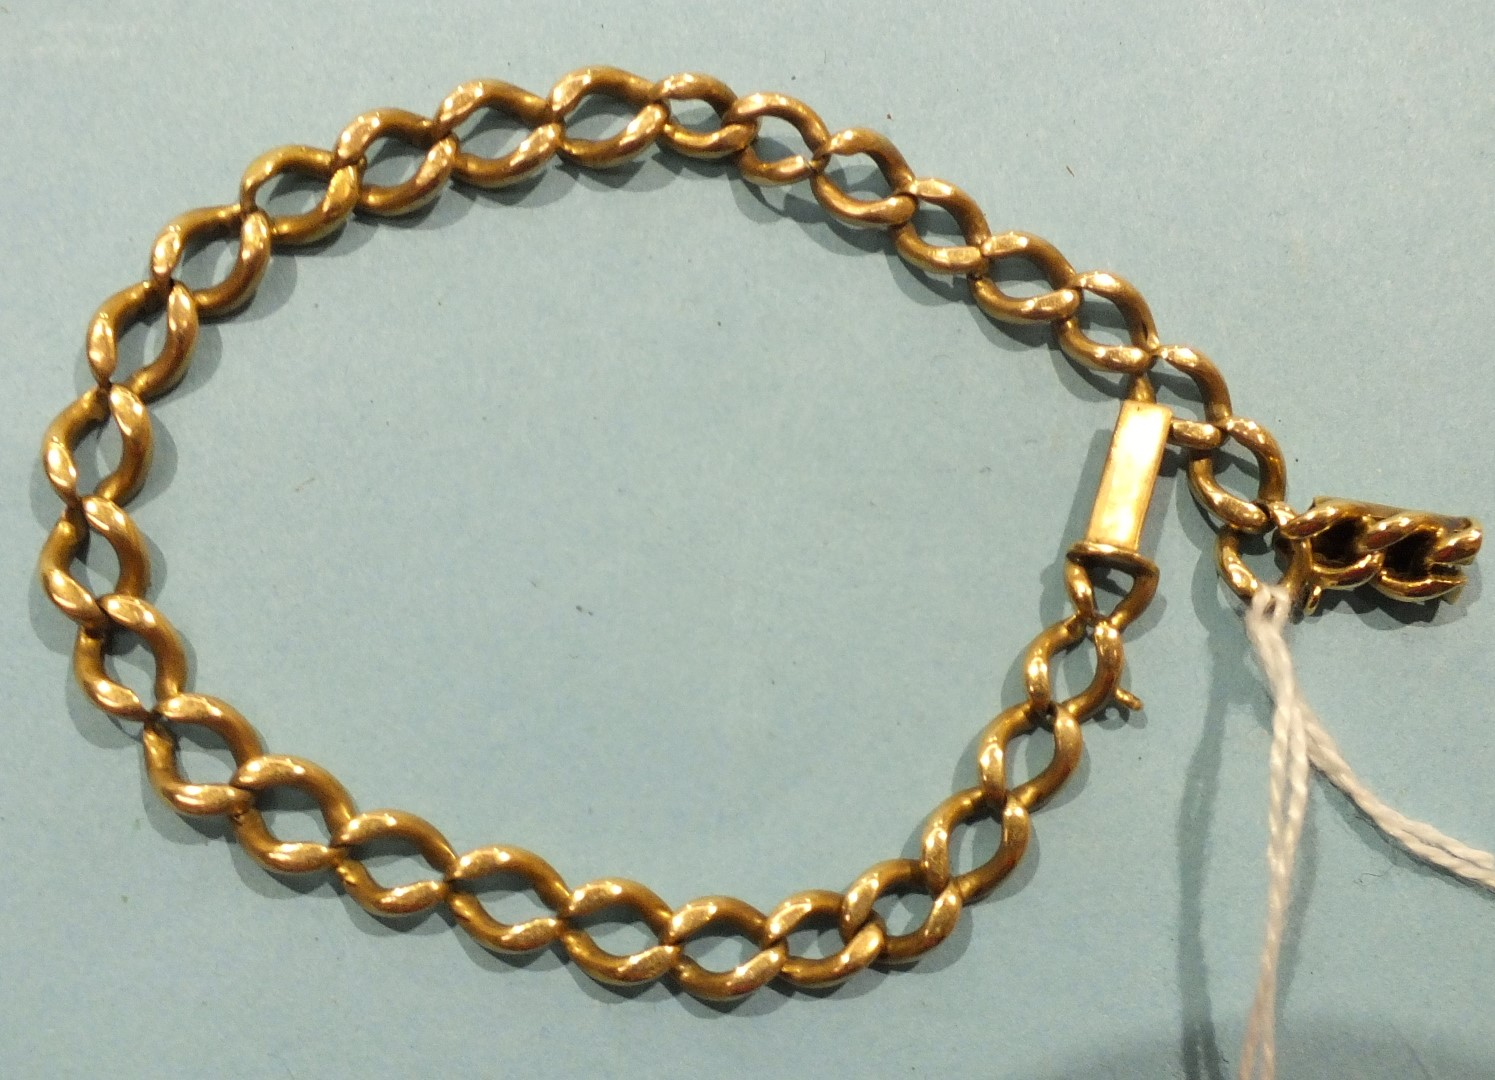 Lot 191 - A gold curb link bracelet with concealed clasp, (unmarked, tested as 14ct, worn), 16g.